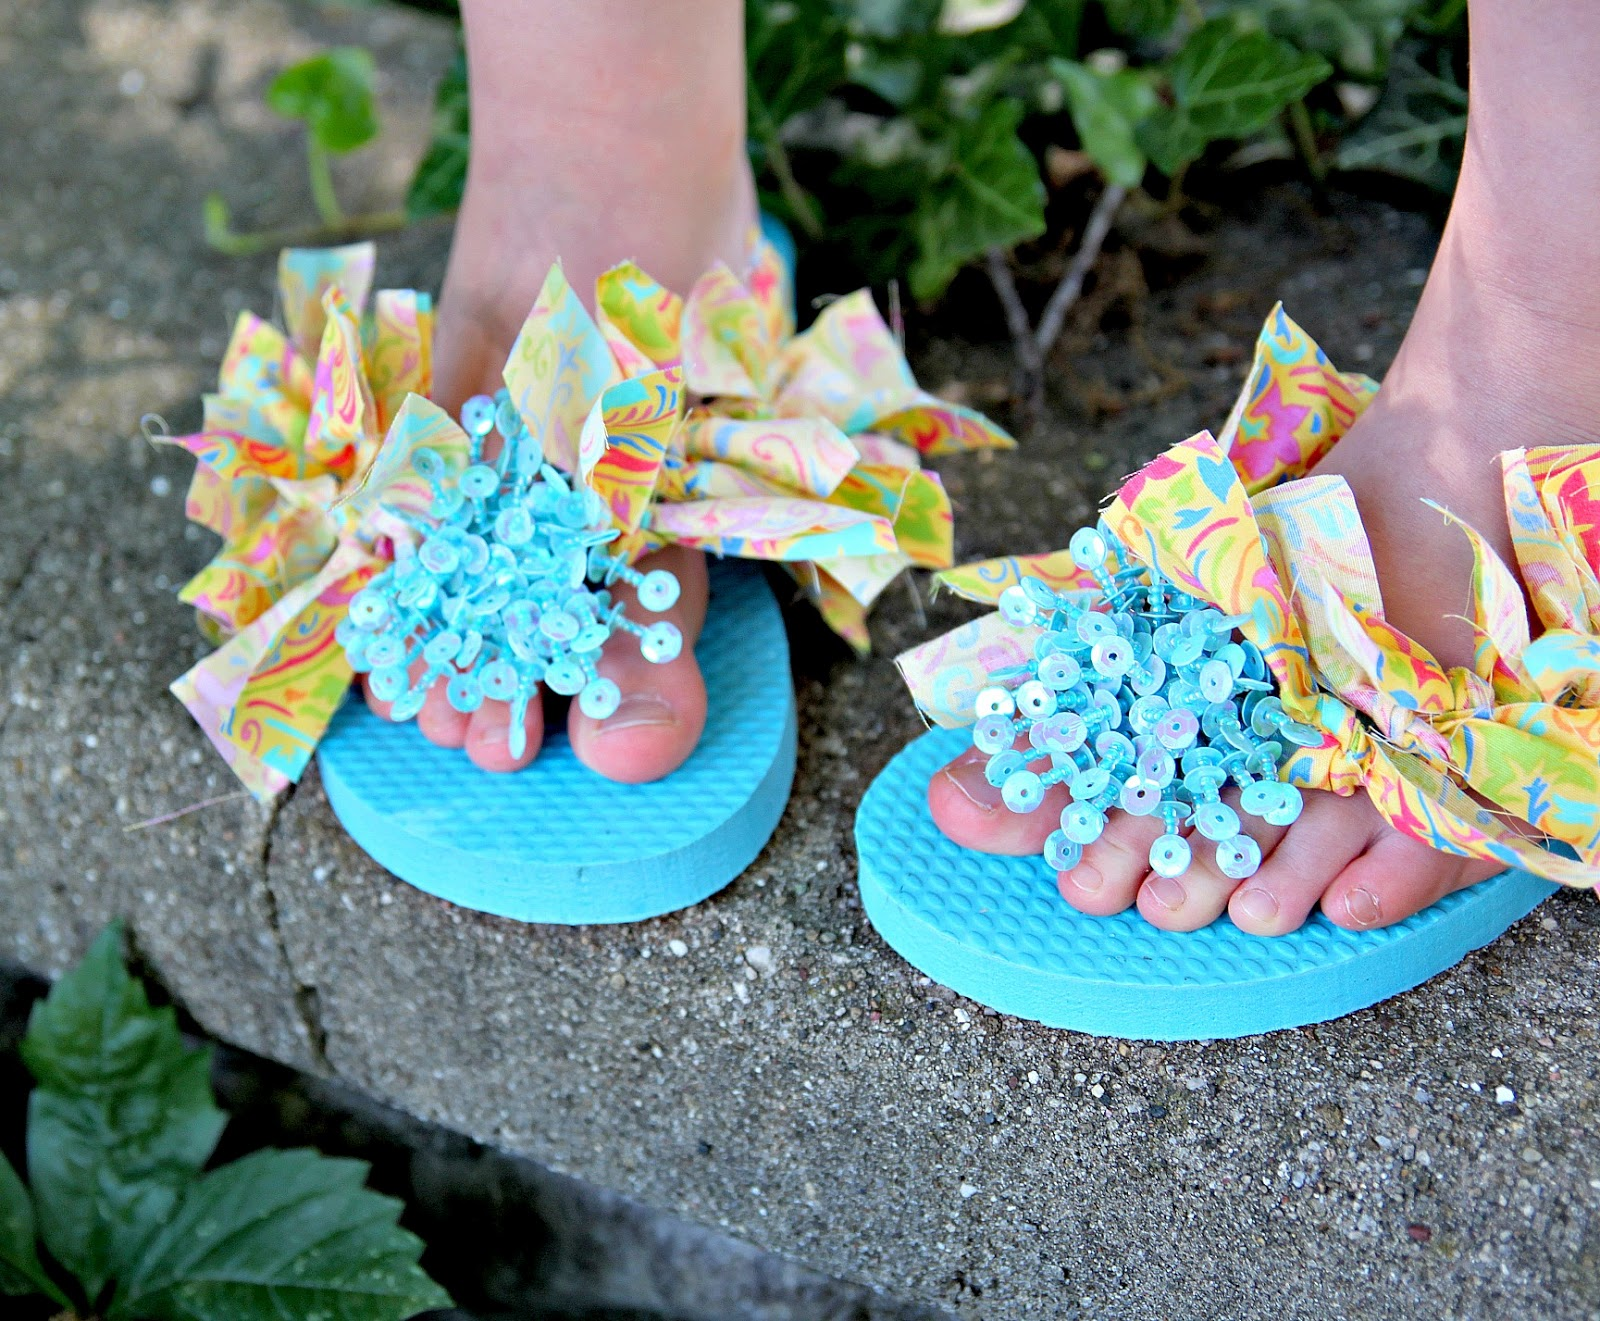 60d429f42 Then let your girly pick her favorite pair to wear this summer! We had a  great time making these flip flops ...